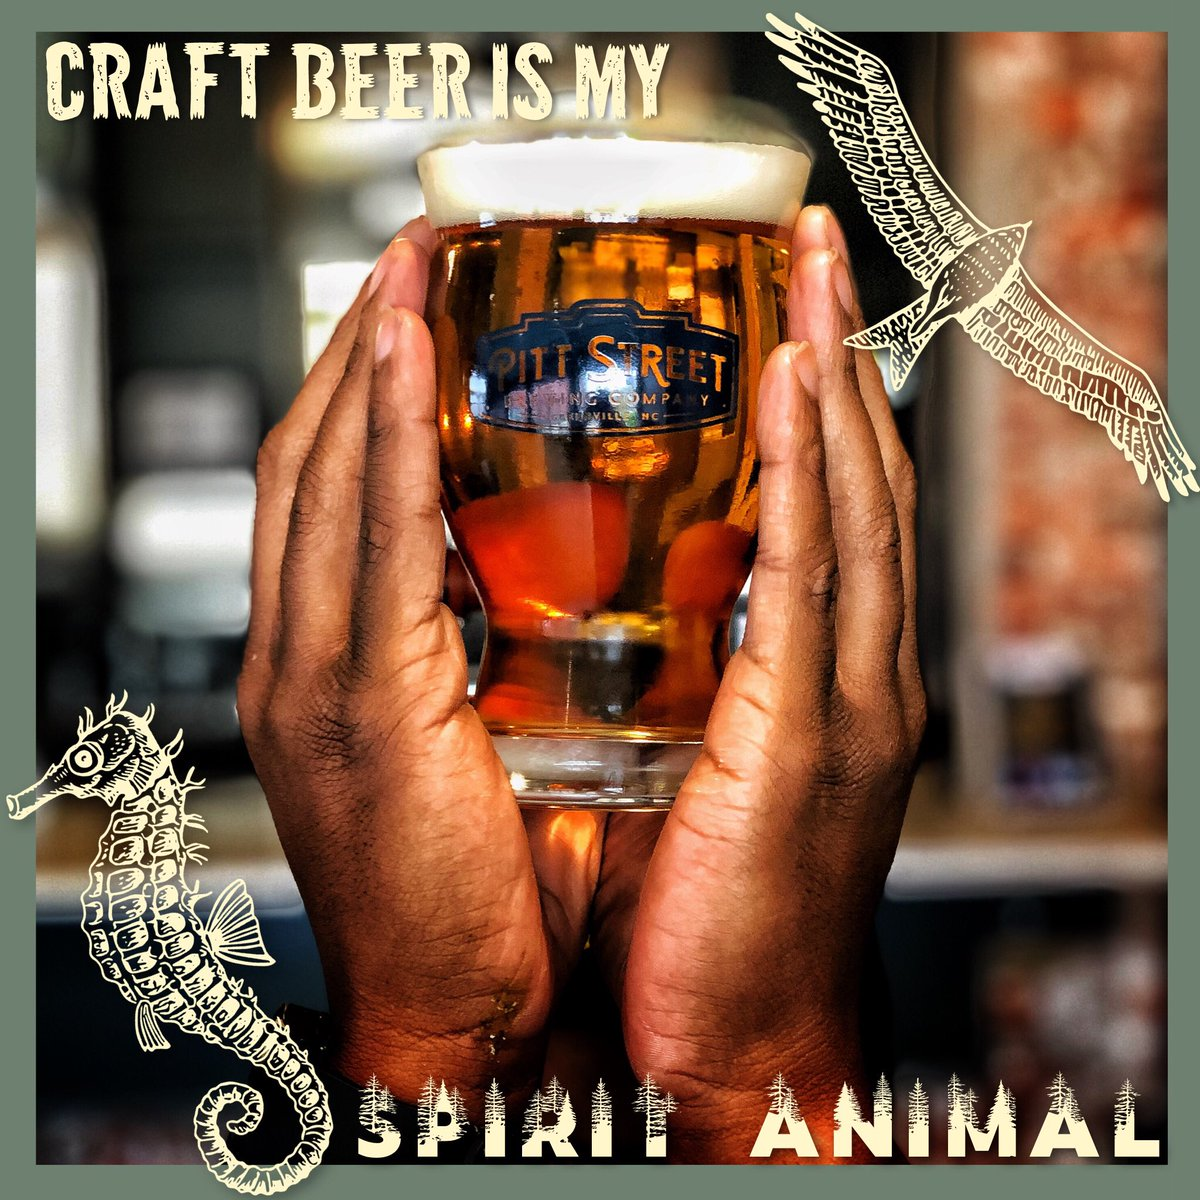 Craft beer is our spirit animal! 🦅 If you relate.. then come try our new Royster Stout or Strawberry Letter 23 while you enjoy free Open Mic Stand Up Comedy Tonight at 8pm! Don't forget to grab some to-go beer on your way out. All cans are 25% off! What's your spirit animal??